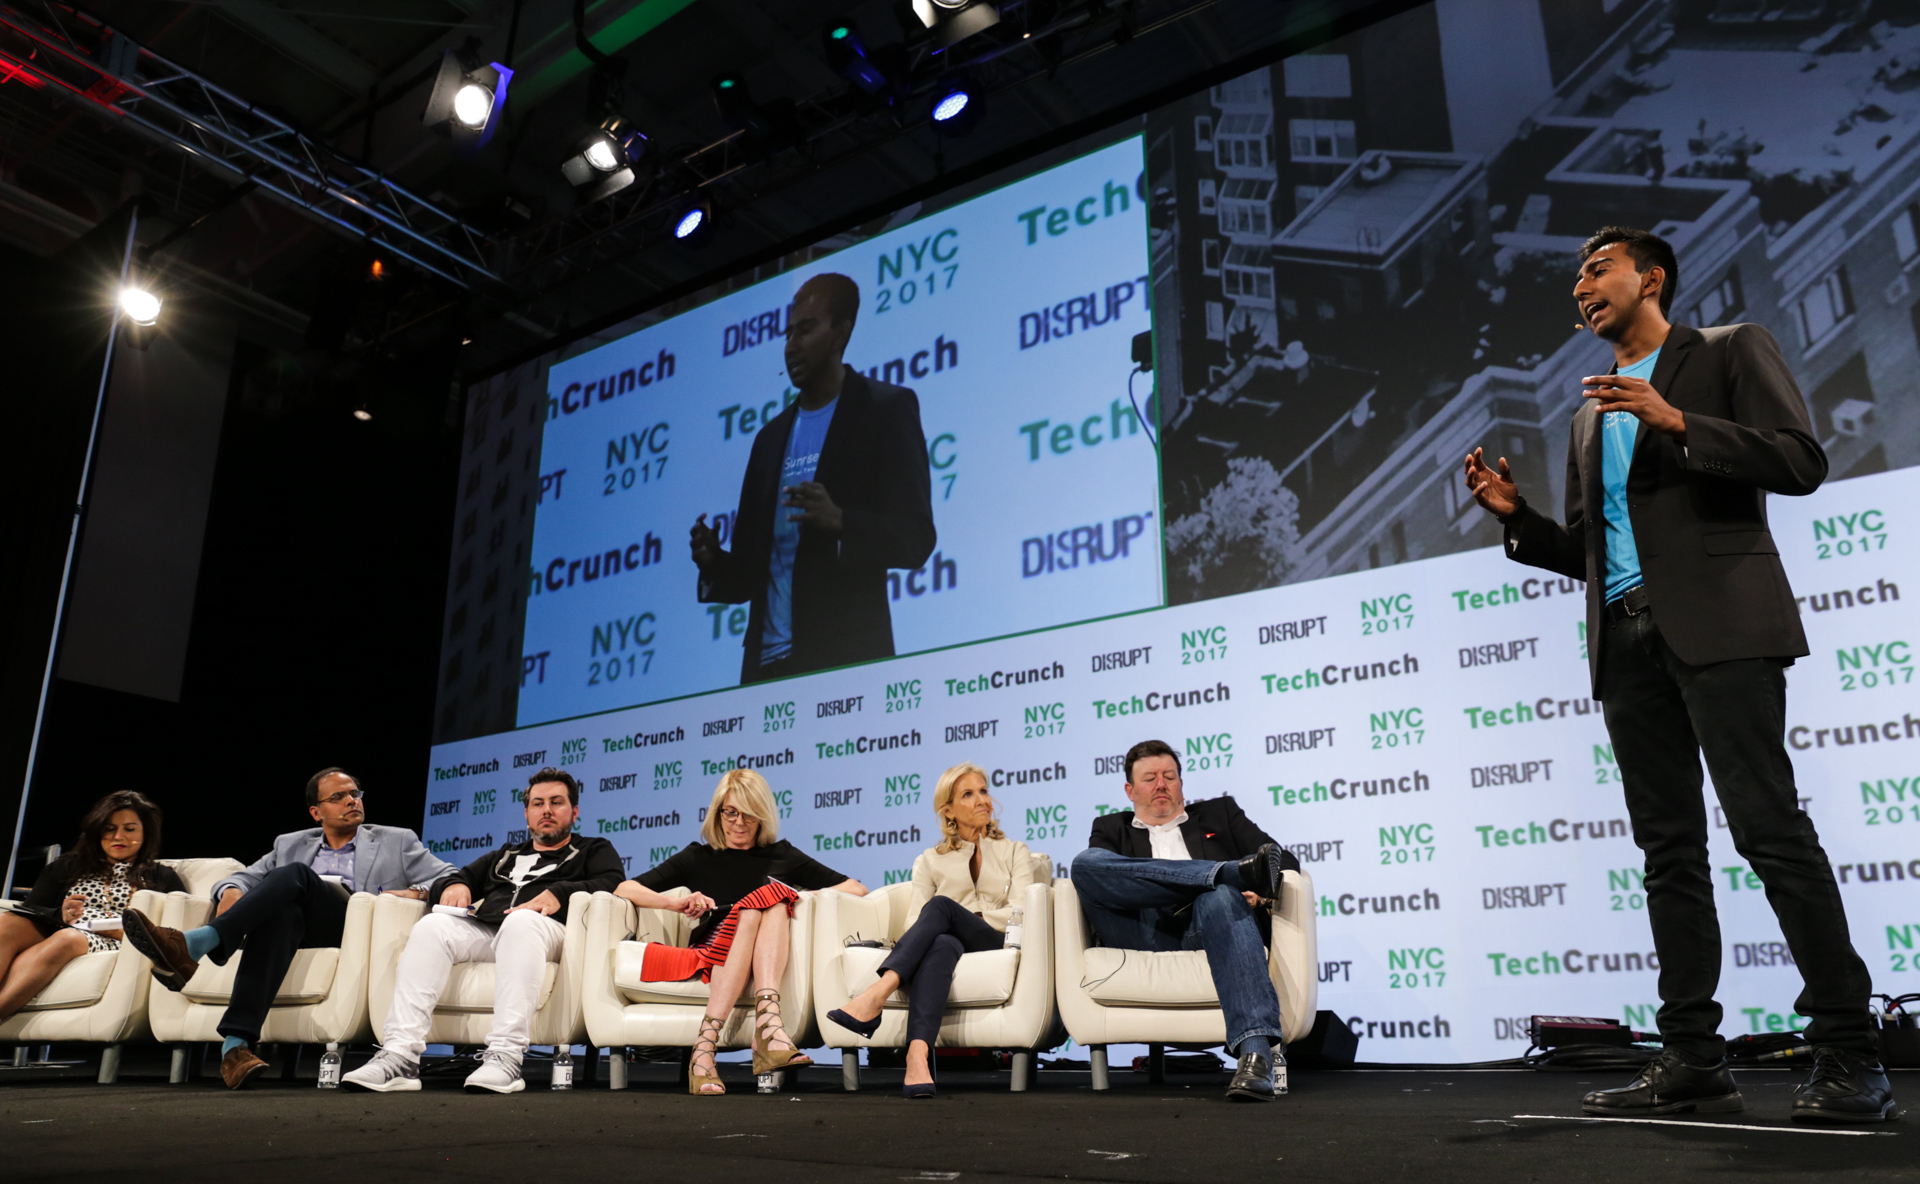 And the winner of Startup Battlefield at Disrupt NY 2017 is ...